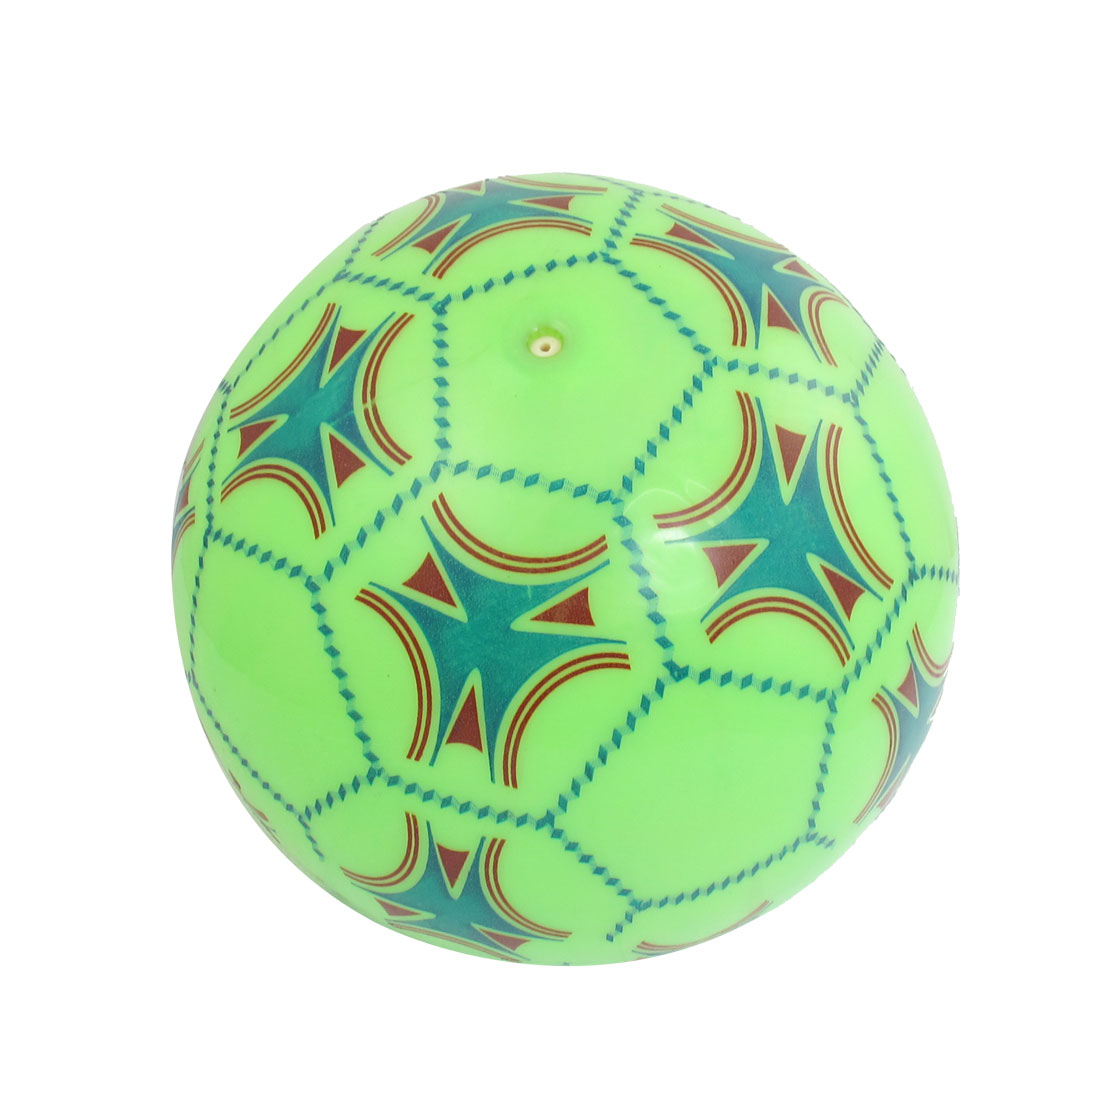 "6.3"" Dia Inflatable PVC Soccer Beach Ball Toy Green Red for Children"